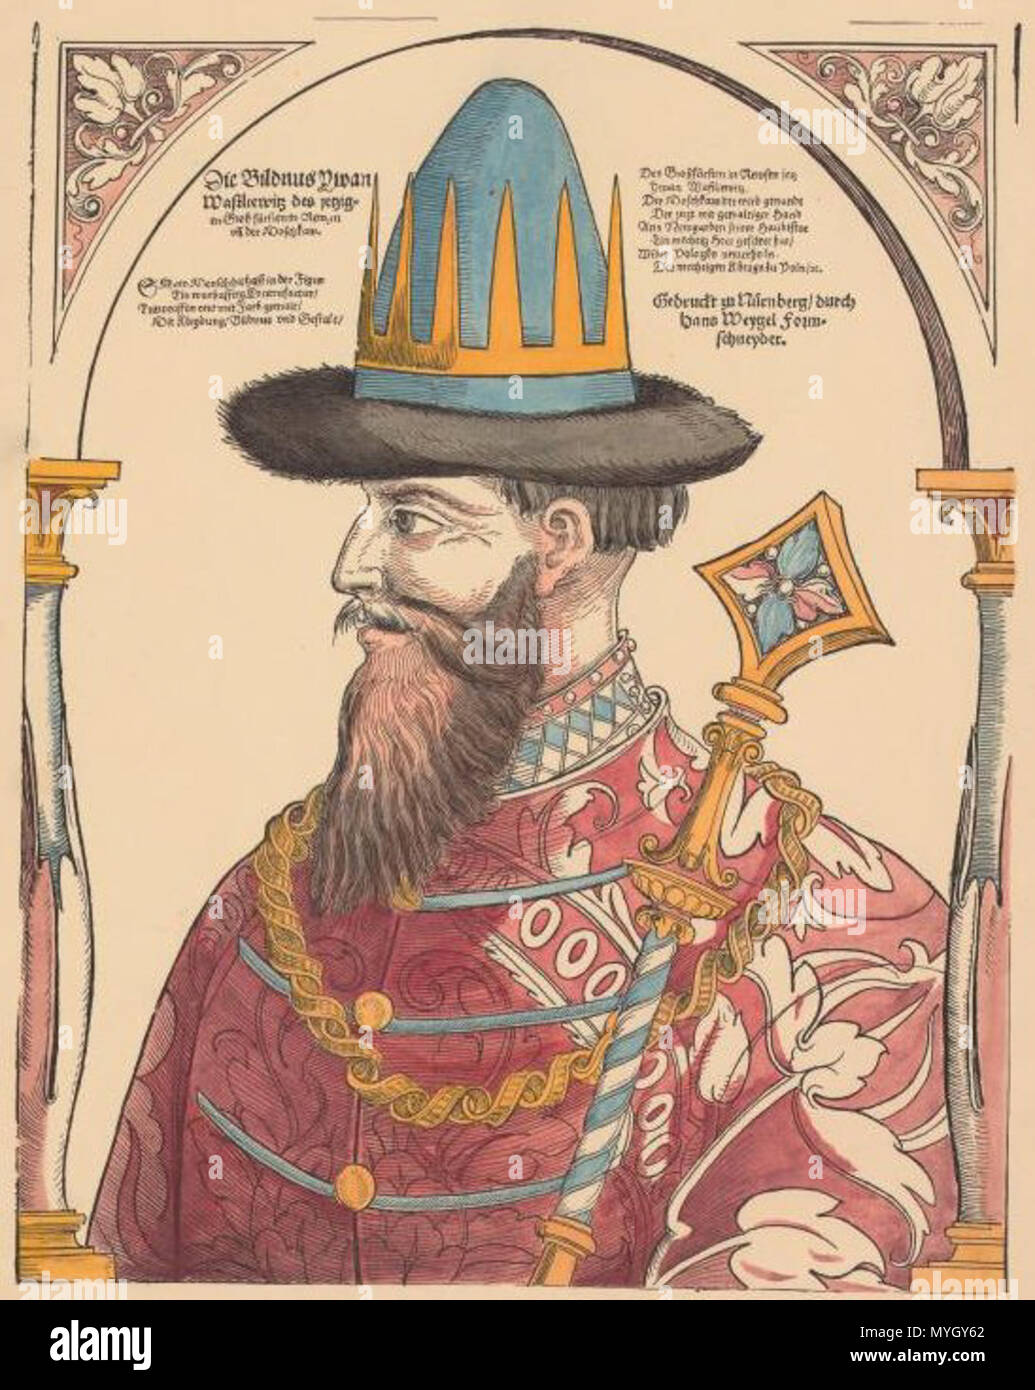 . English: Ivan IV the Terrible portrait by Weigel 1882 . 26 April 2012. Wiegel 1882 262 Ivan IV the Terrible portrait by Weigel 1882 - Stock Image